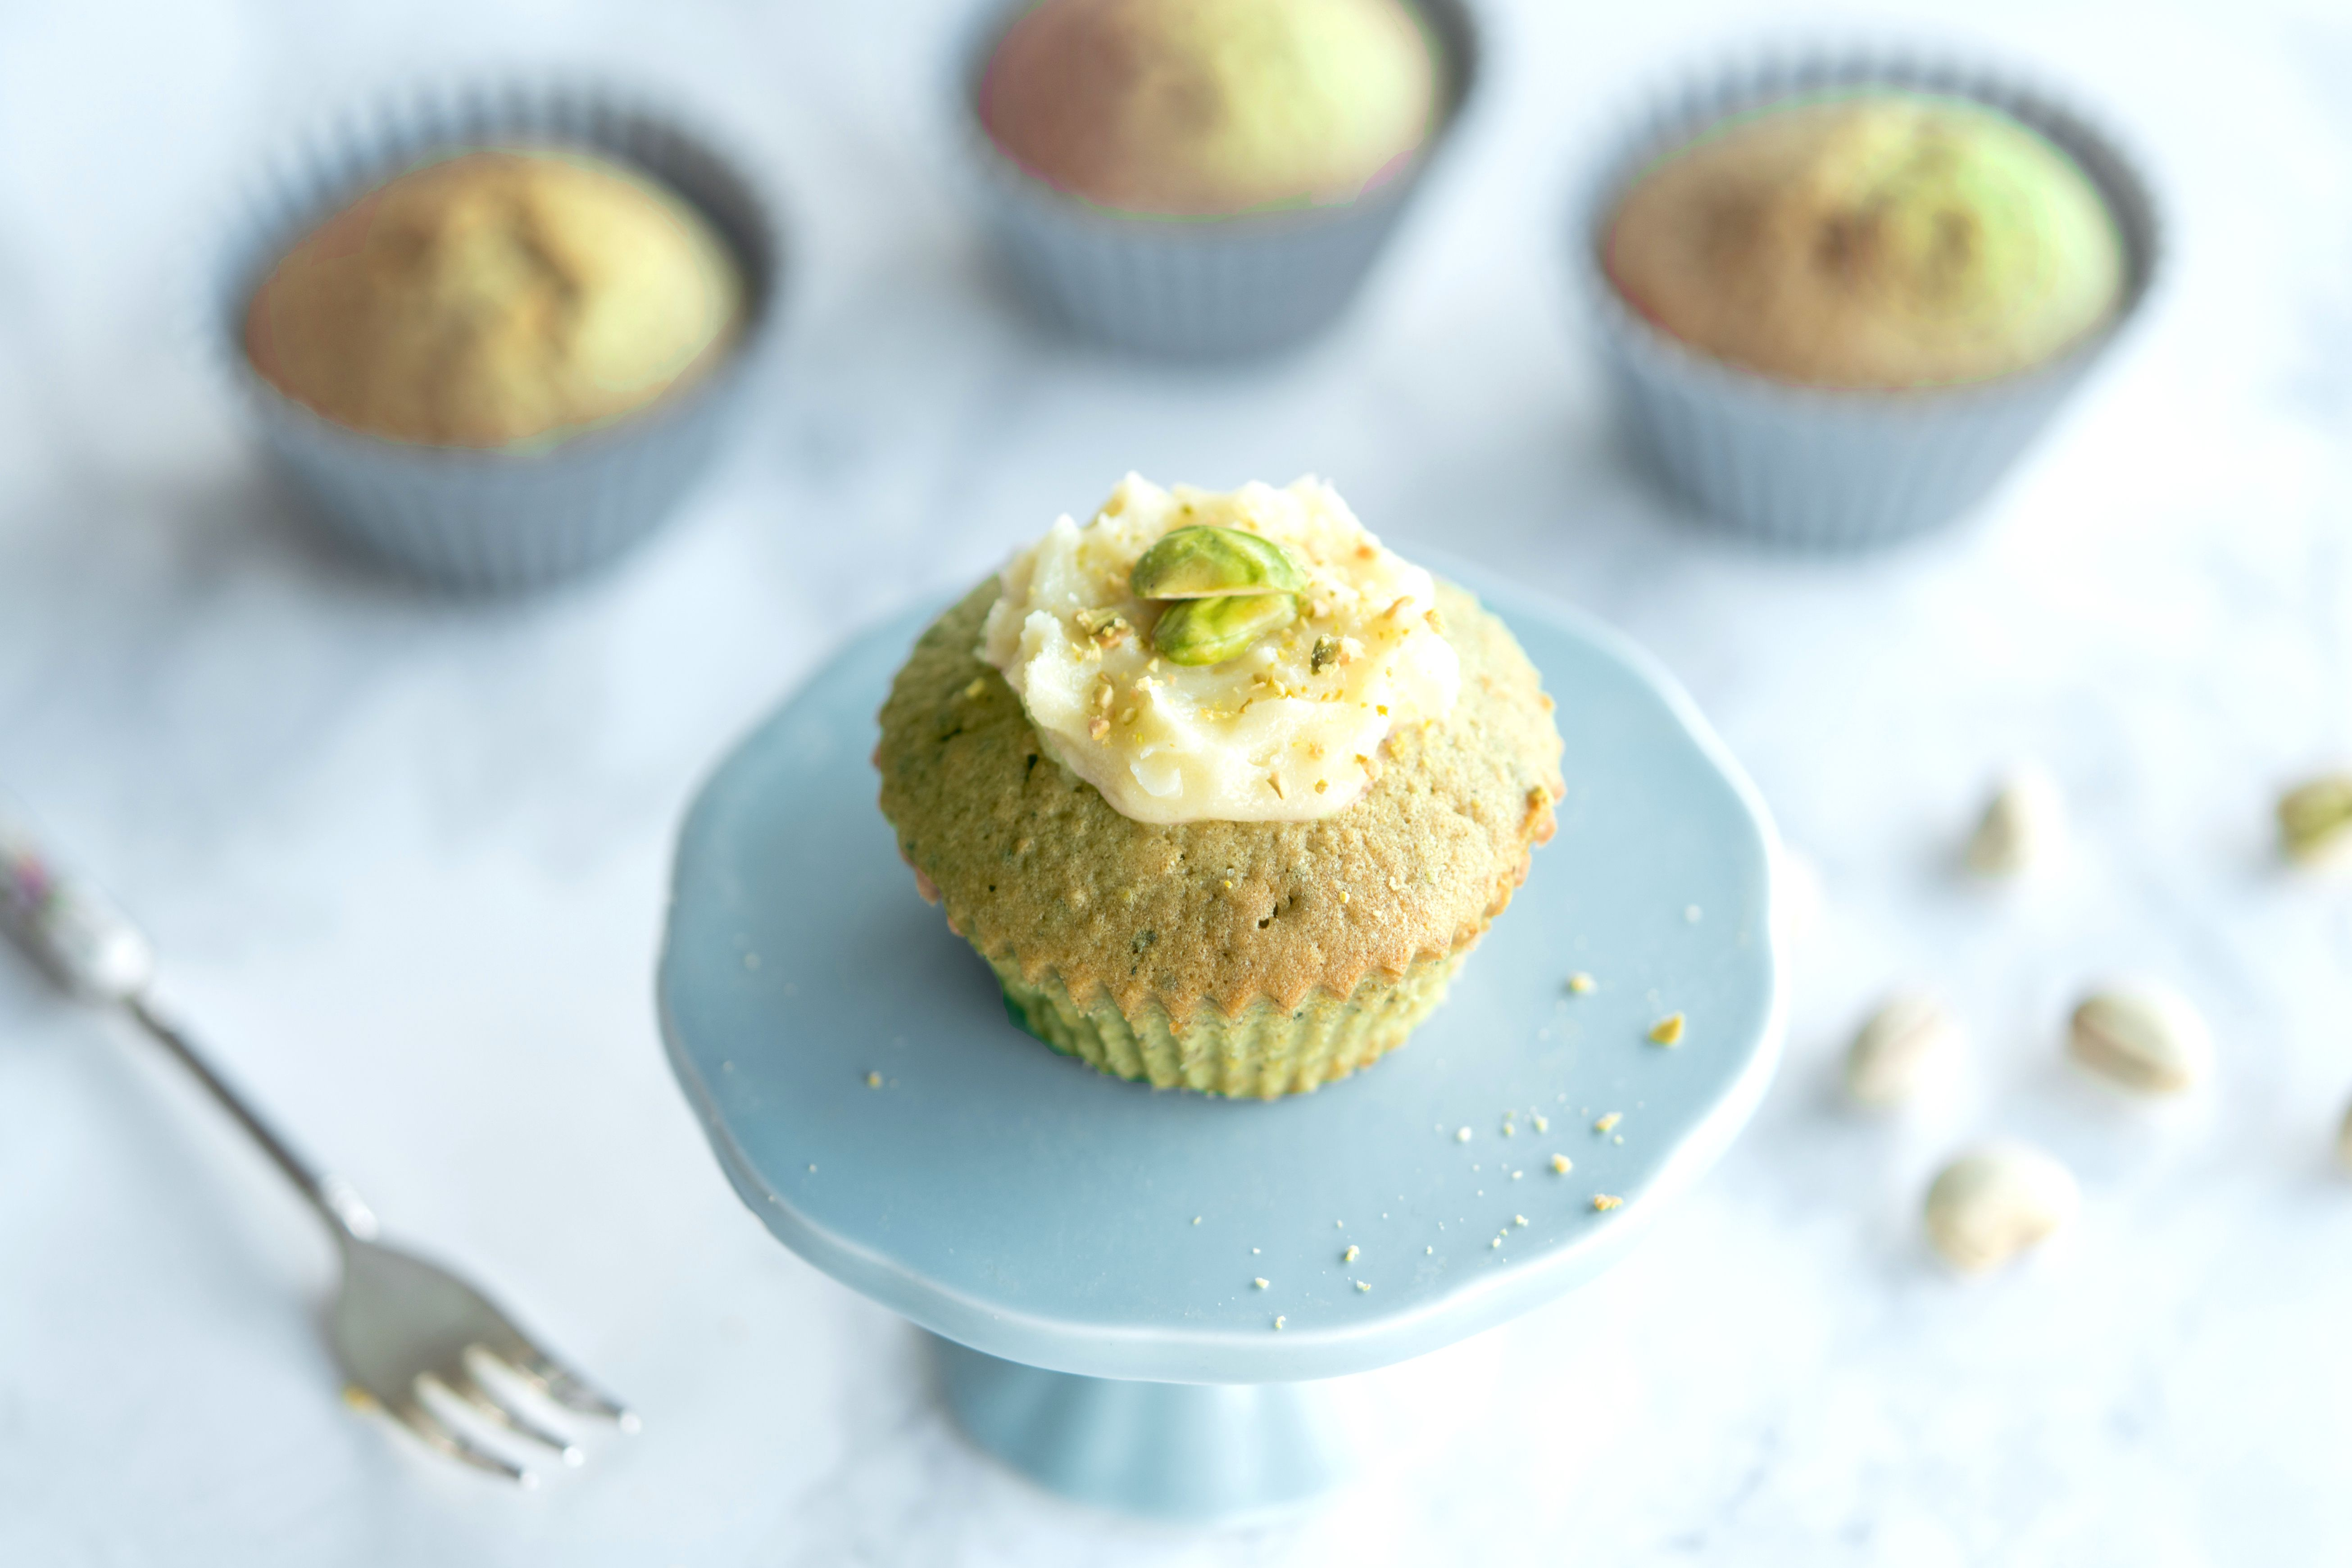 These Pistachios Muffins Are Packed With Nutty Flavor